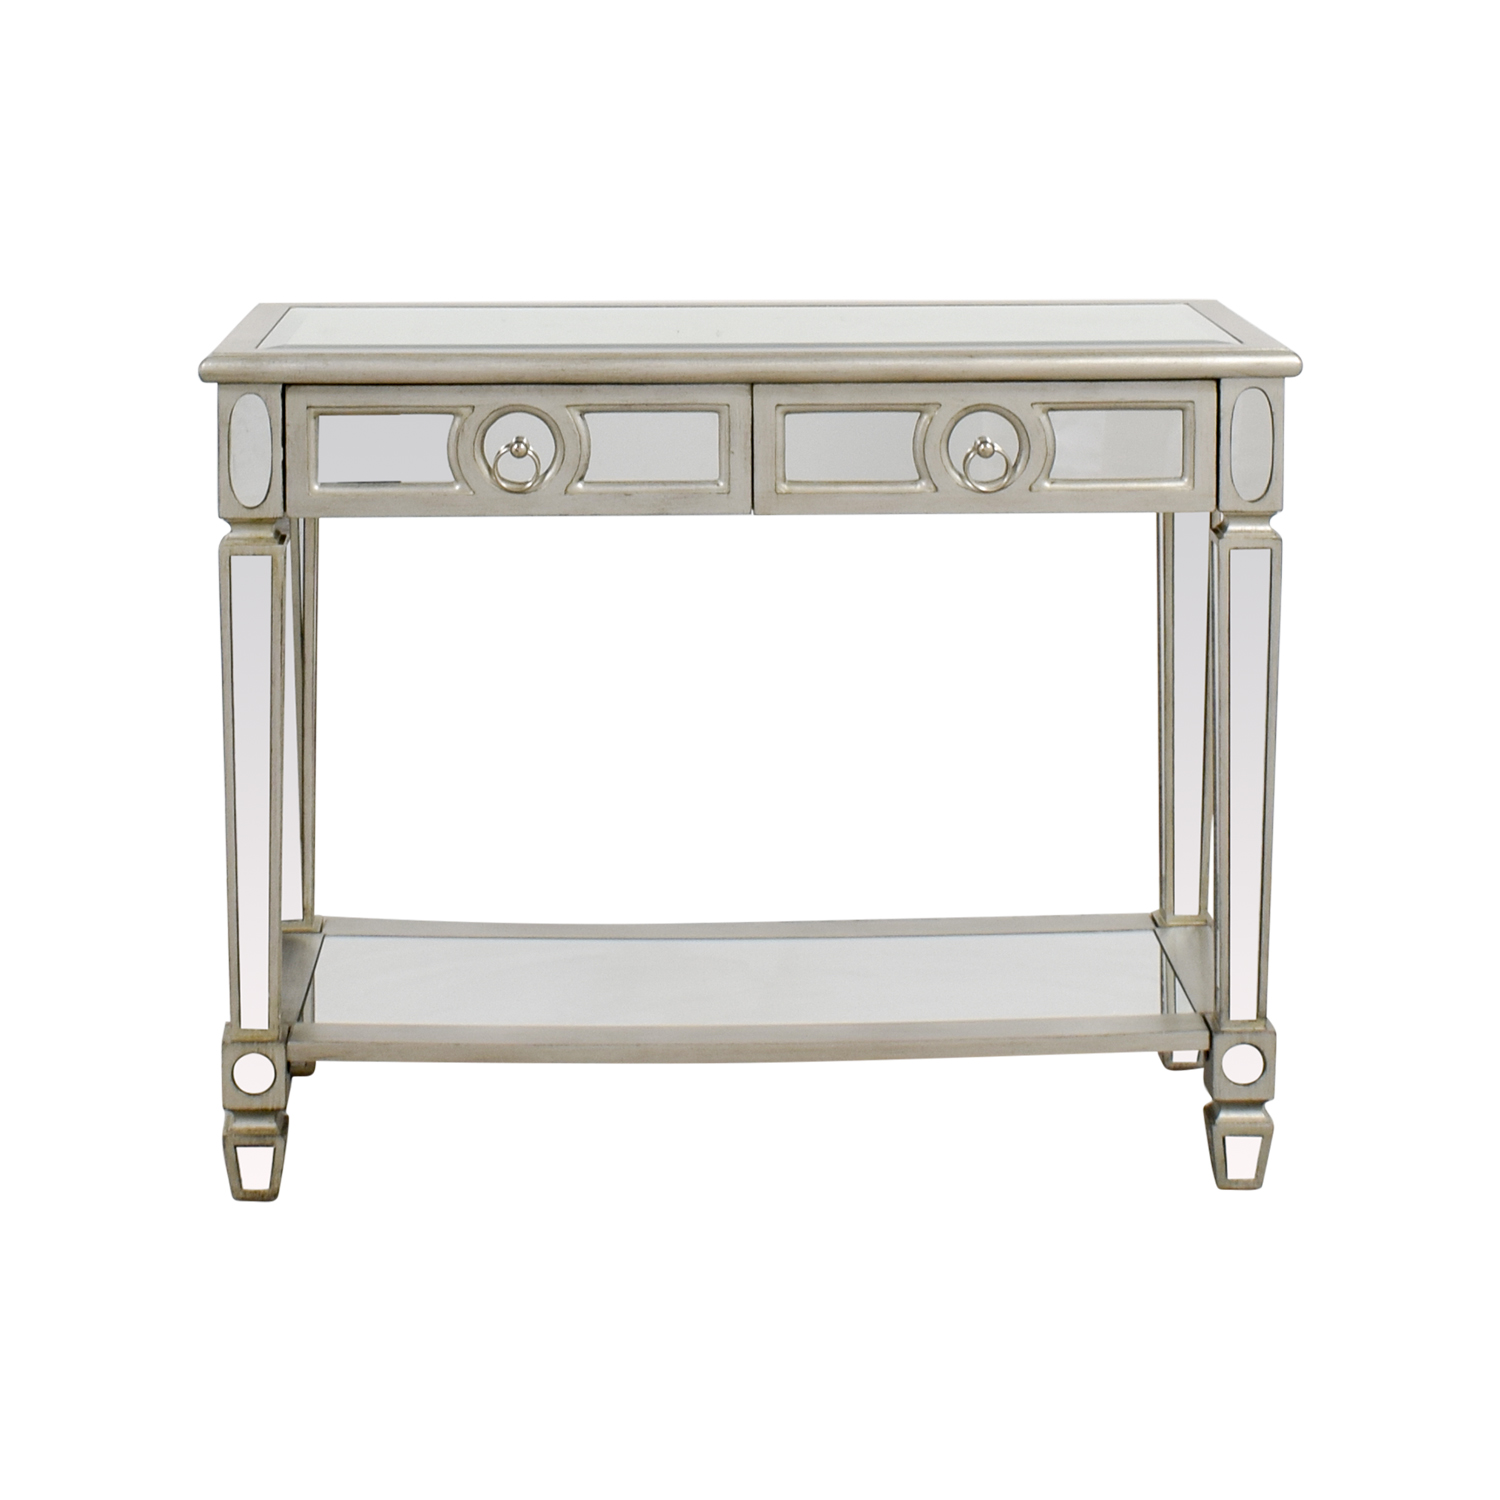 Monarch Furniture Monarch Furniture Mirrored Sofa Console Table second hand